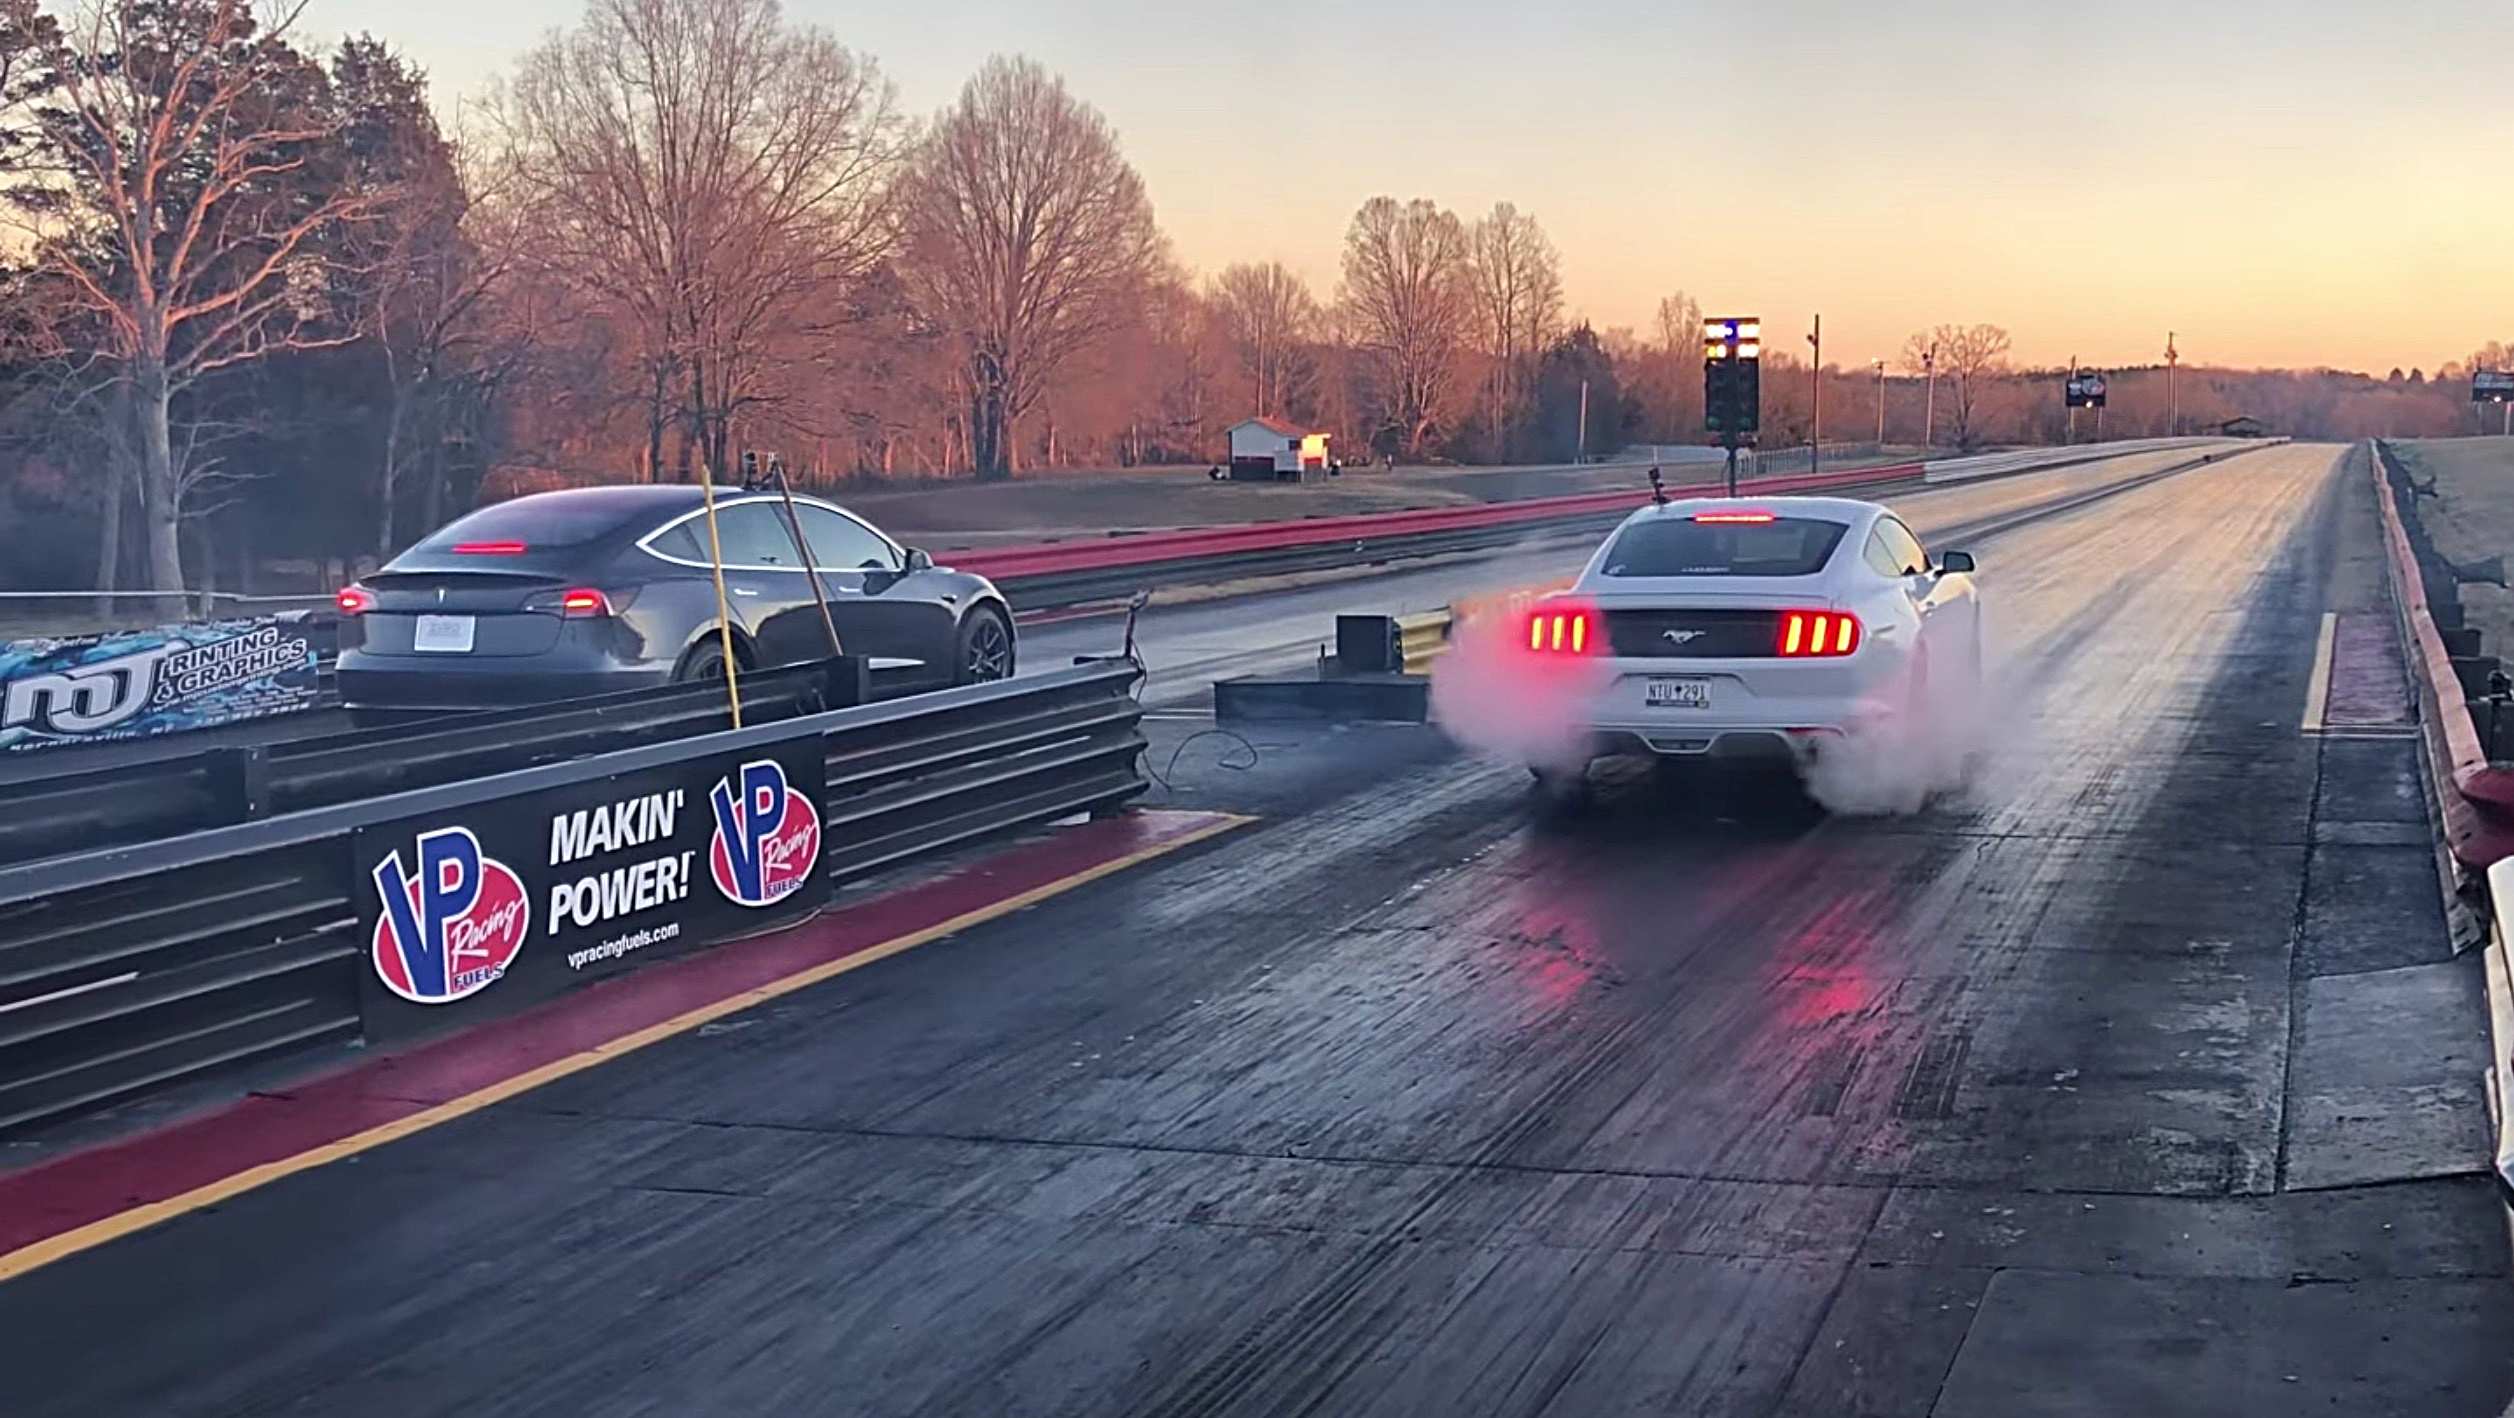 Tesla Model 3 with 65% battery outruns Mustang on the drag strip